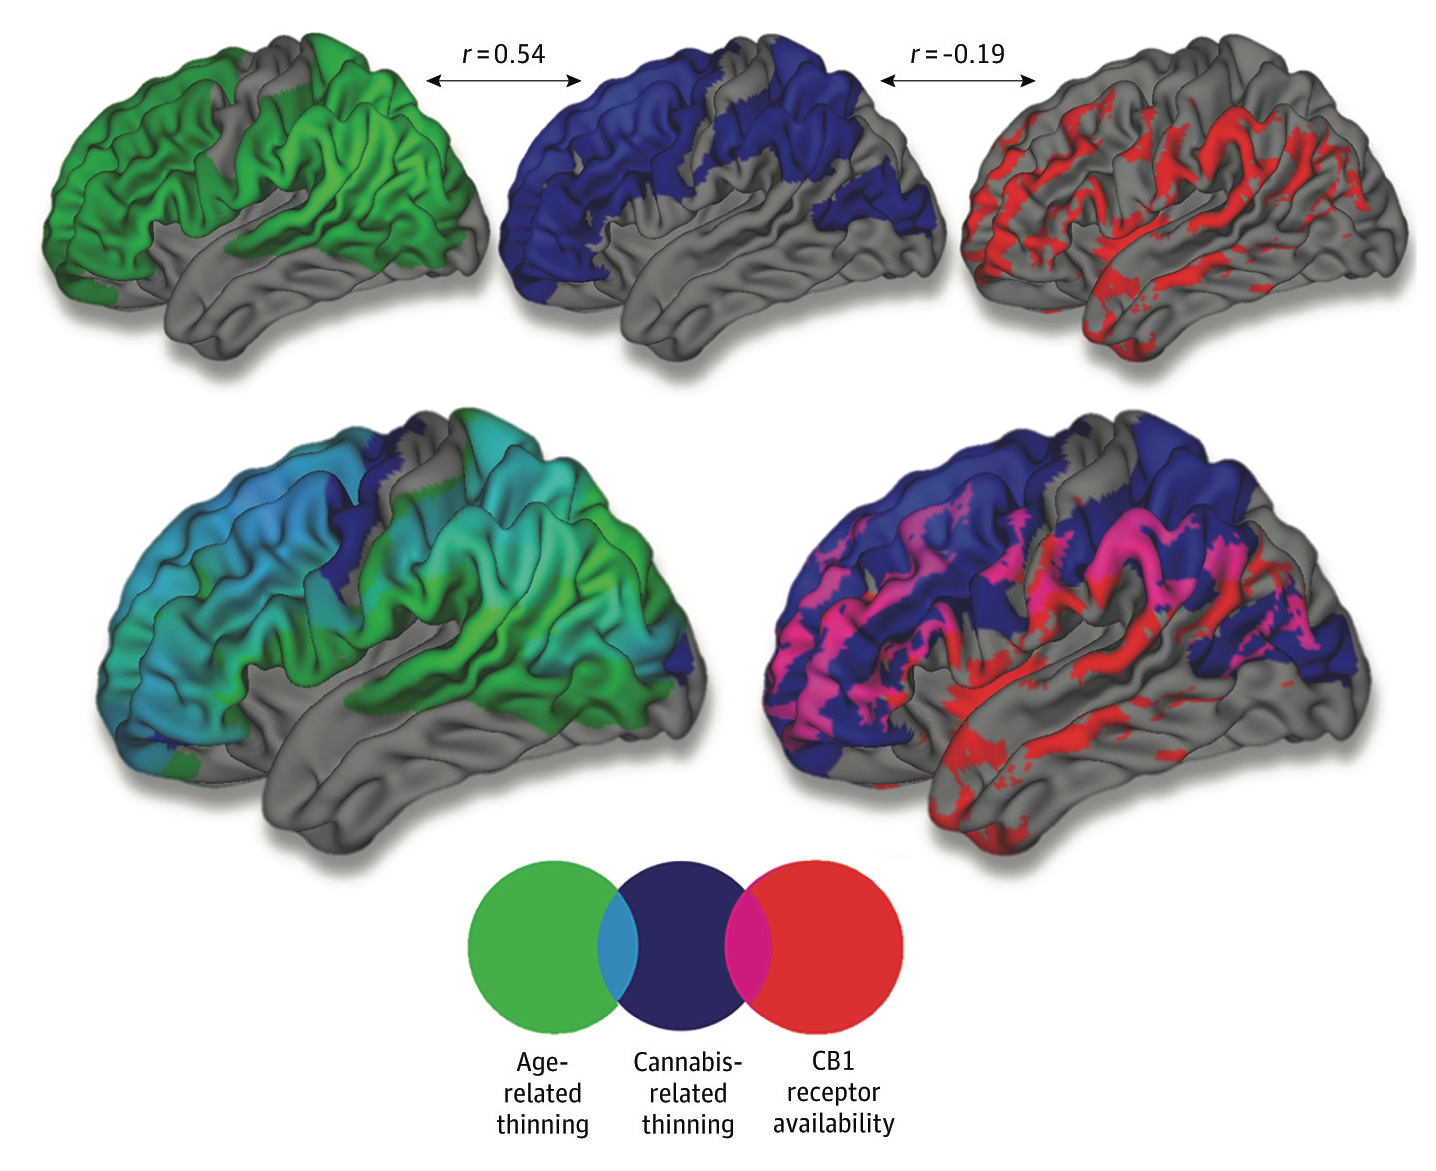 brain maps showing how areas of the brain that thin between 14 and 25 are affected by cannabis